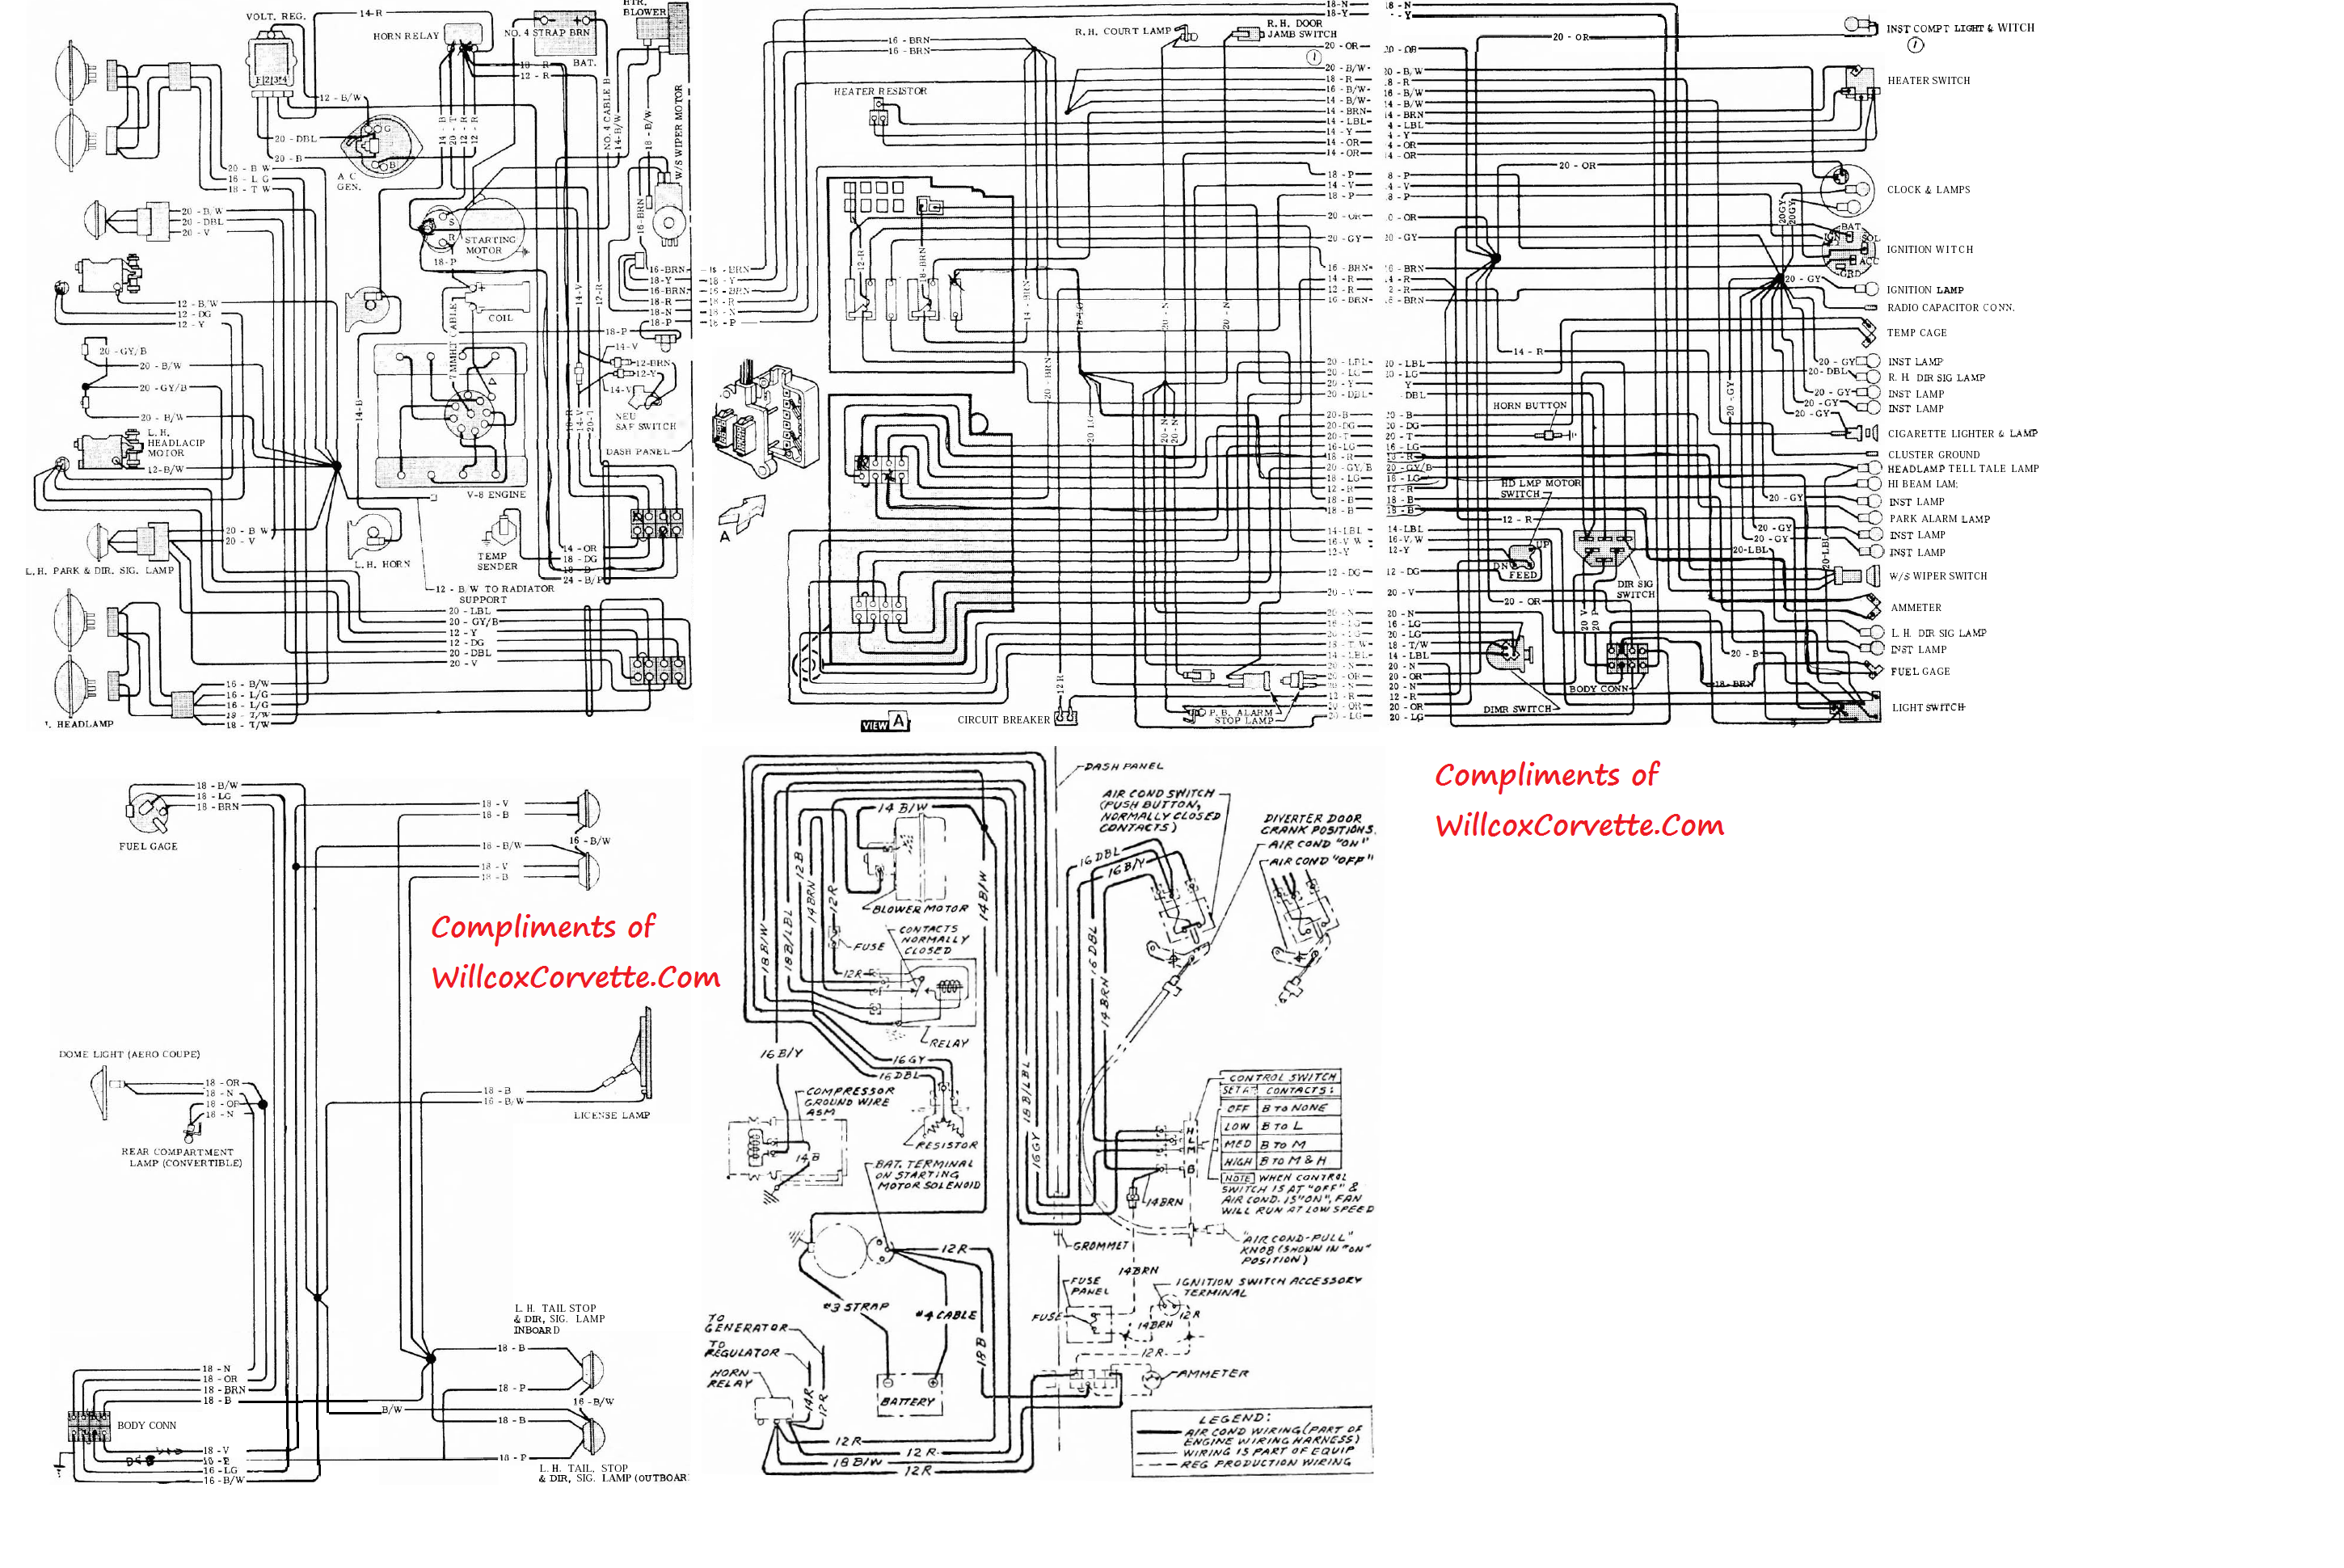 Wiring Diagram For 1975 Mustang - Wiring Diagram All Data on 1967 mustang wiper motor wiring diagram, 1965 mustang fuel pump diagram, 1965 mustang brake line diagram, 1965 mustang starter solenoid, 1965 mustang engine diagram, mustang wiring harness diagram, 1965 mustang exhaust diagram, 1965 mustang assembly diagram, 1965 mustang 289 hipo engine, 1965 mustang outline, 1965 mustang blueprints, 1965 mustang door diagram, 1964 mustang wiring diagram, 1965 mustang burnt amber, 1966 mustang alternator diagram, 1965 mustang fuse box diagram, 1965 mustang voltage regulator diagram, ford mustang wiring diagram, 1965 mustang tachometer diagram, 1966 mustang wiring diagram,